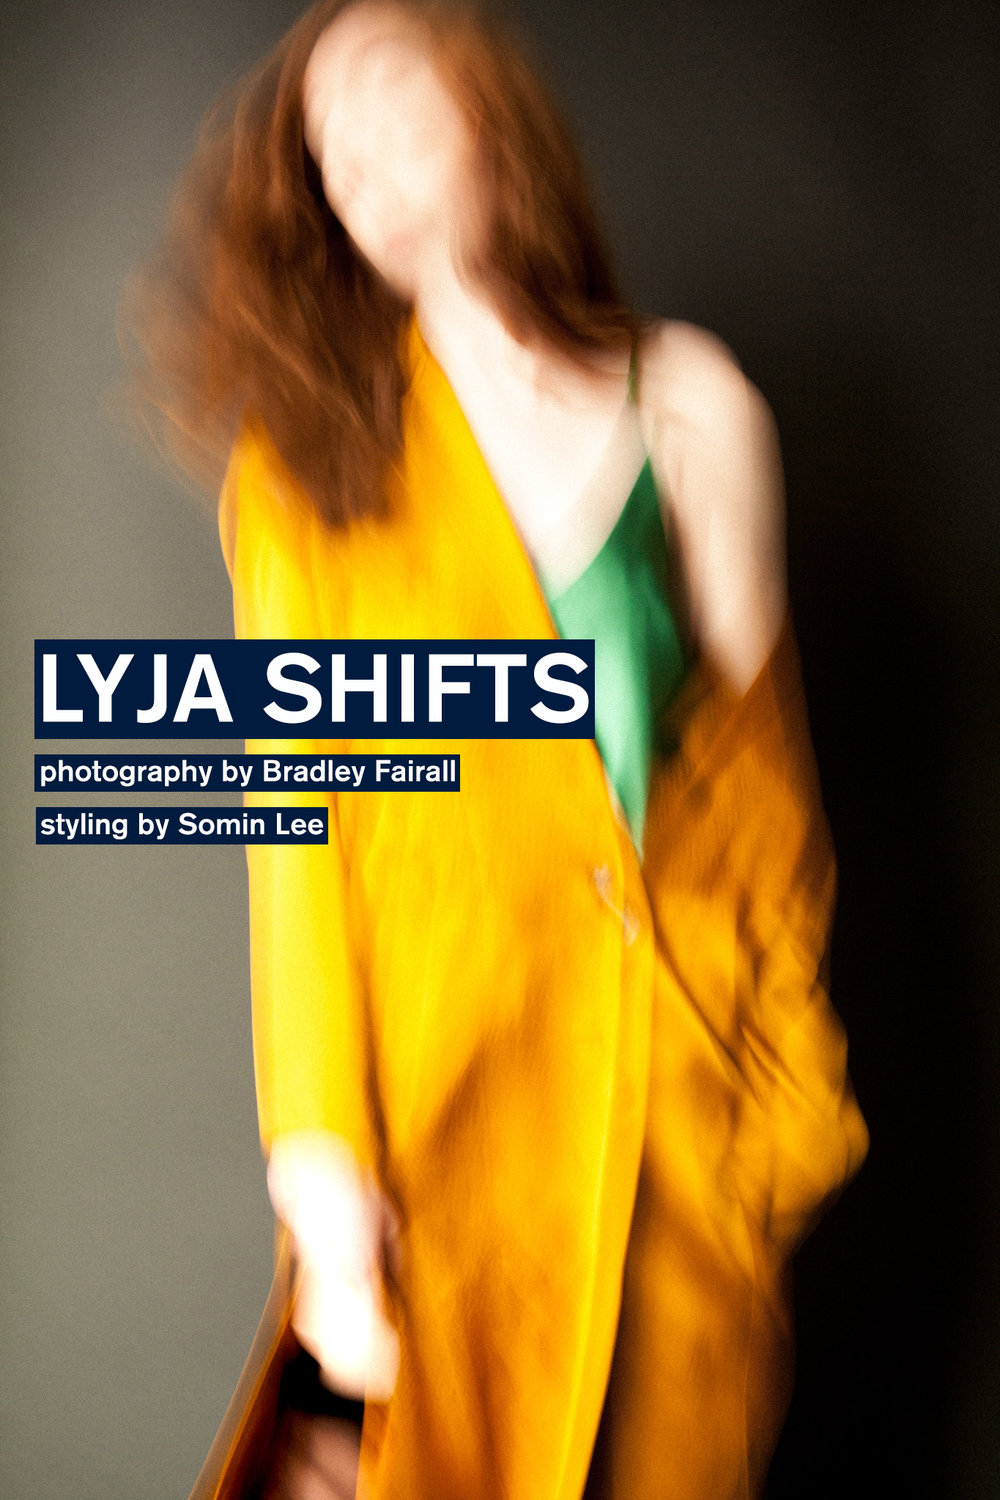 lyja-shifts-bradley-fairall